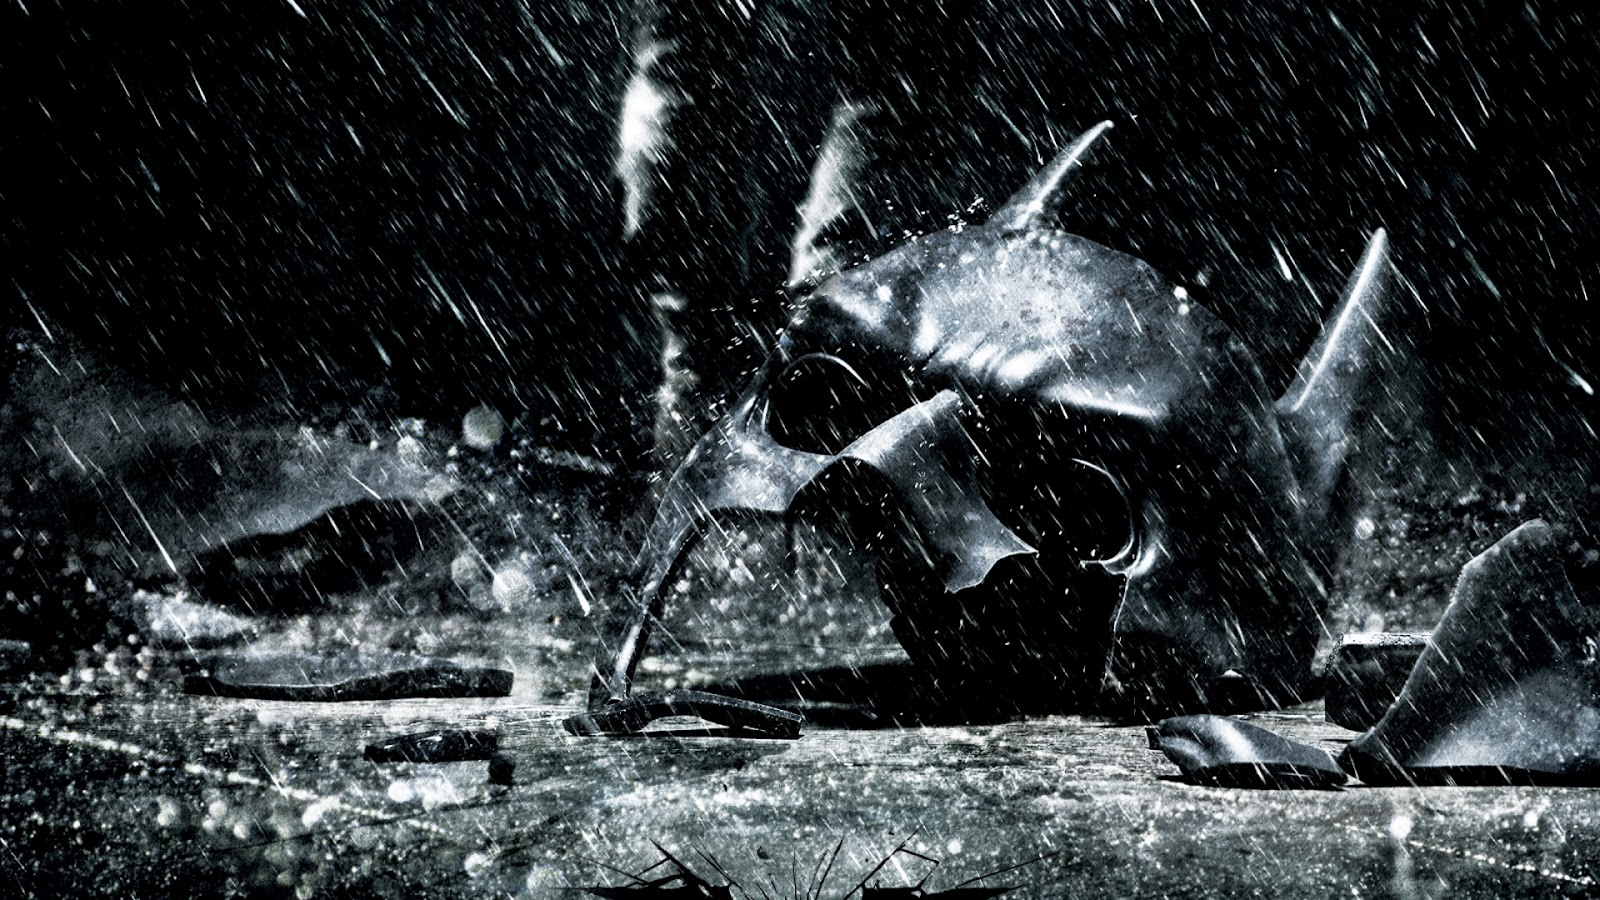 the dark knight rises 02 1920x1080 new movies wallpapers